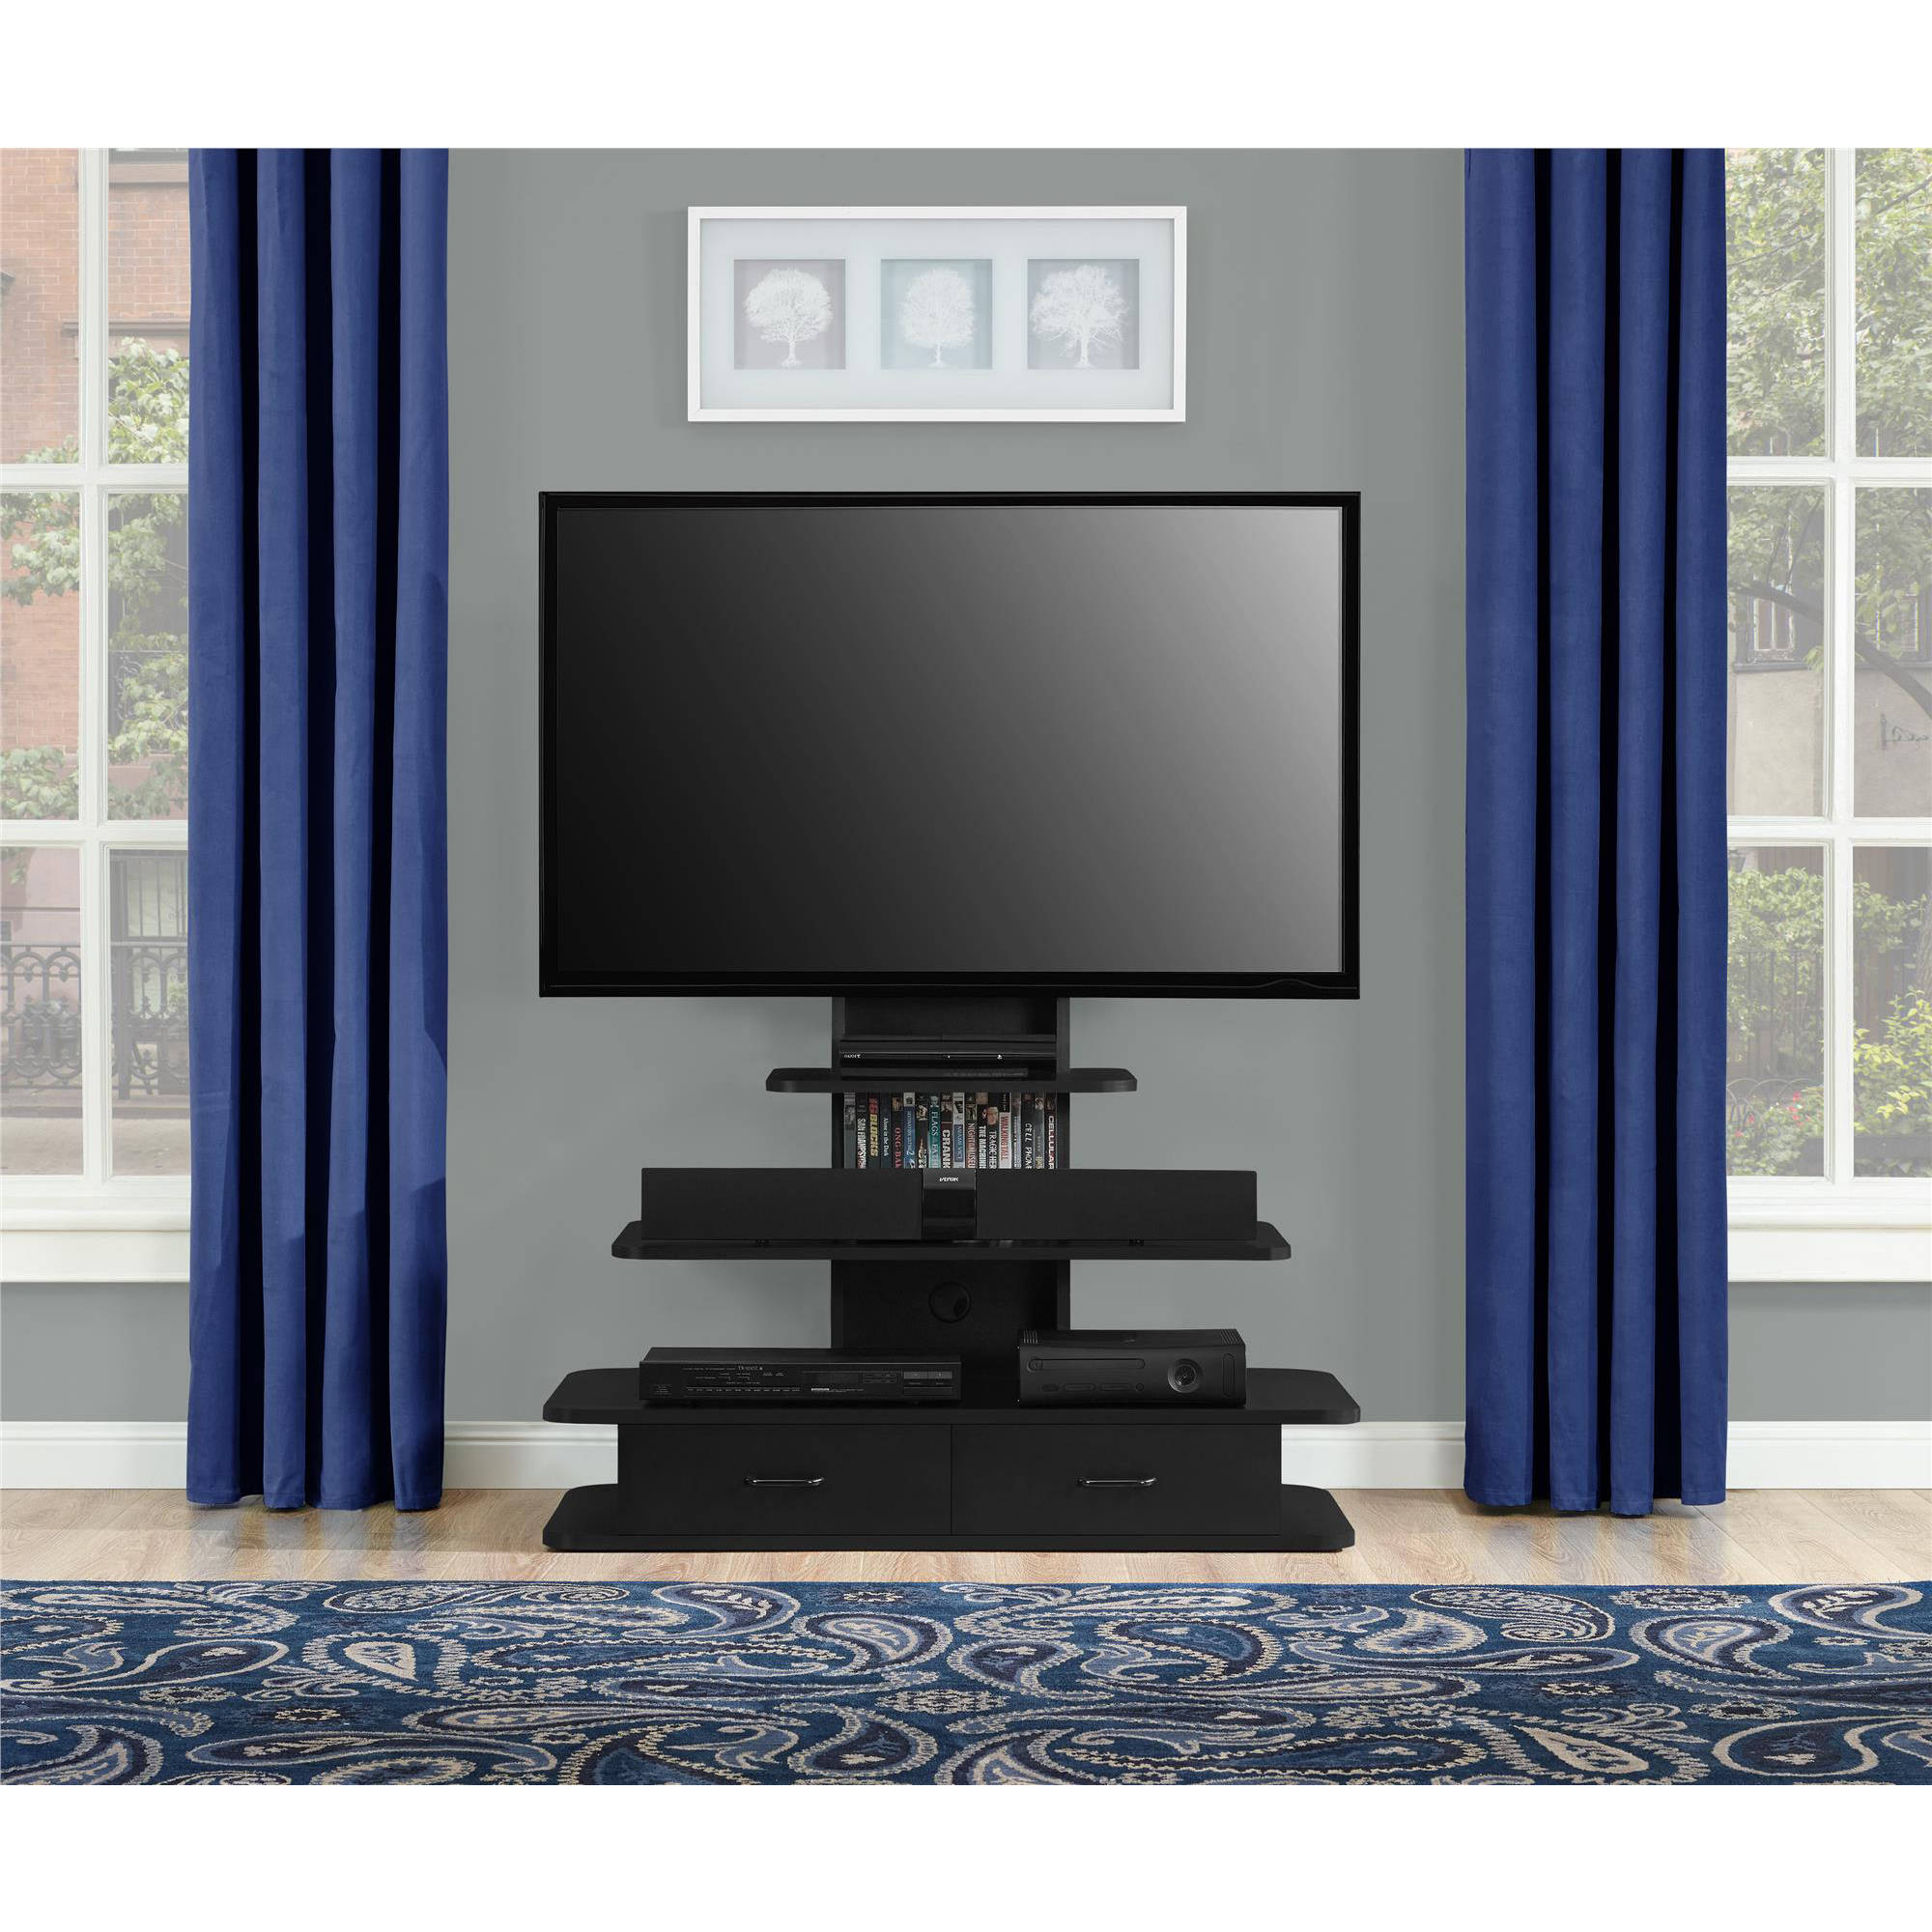 Ameriwood Home Galaxy Xl Tv Stand With Drawers For Tvs Up To 70